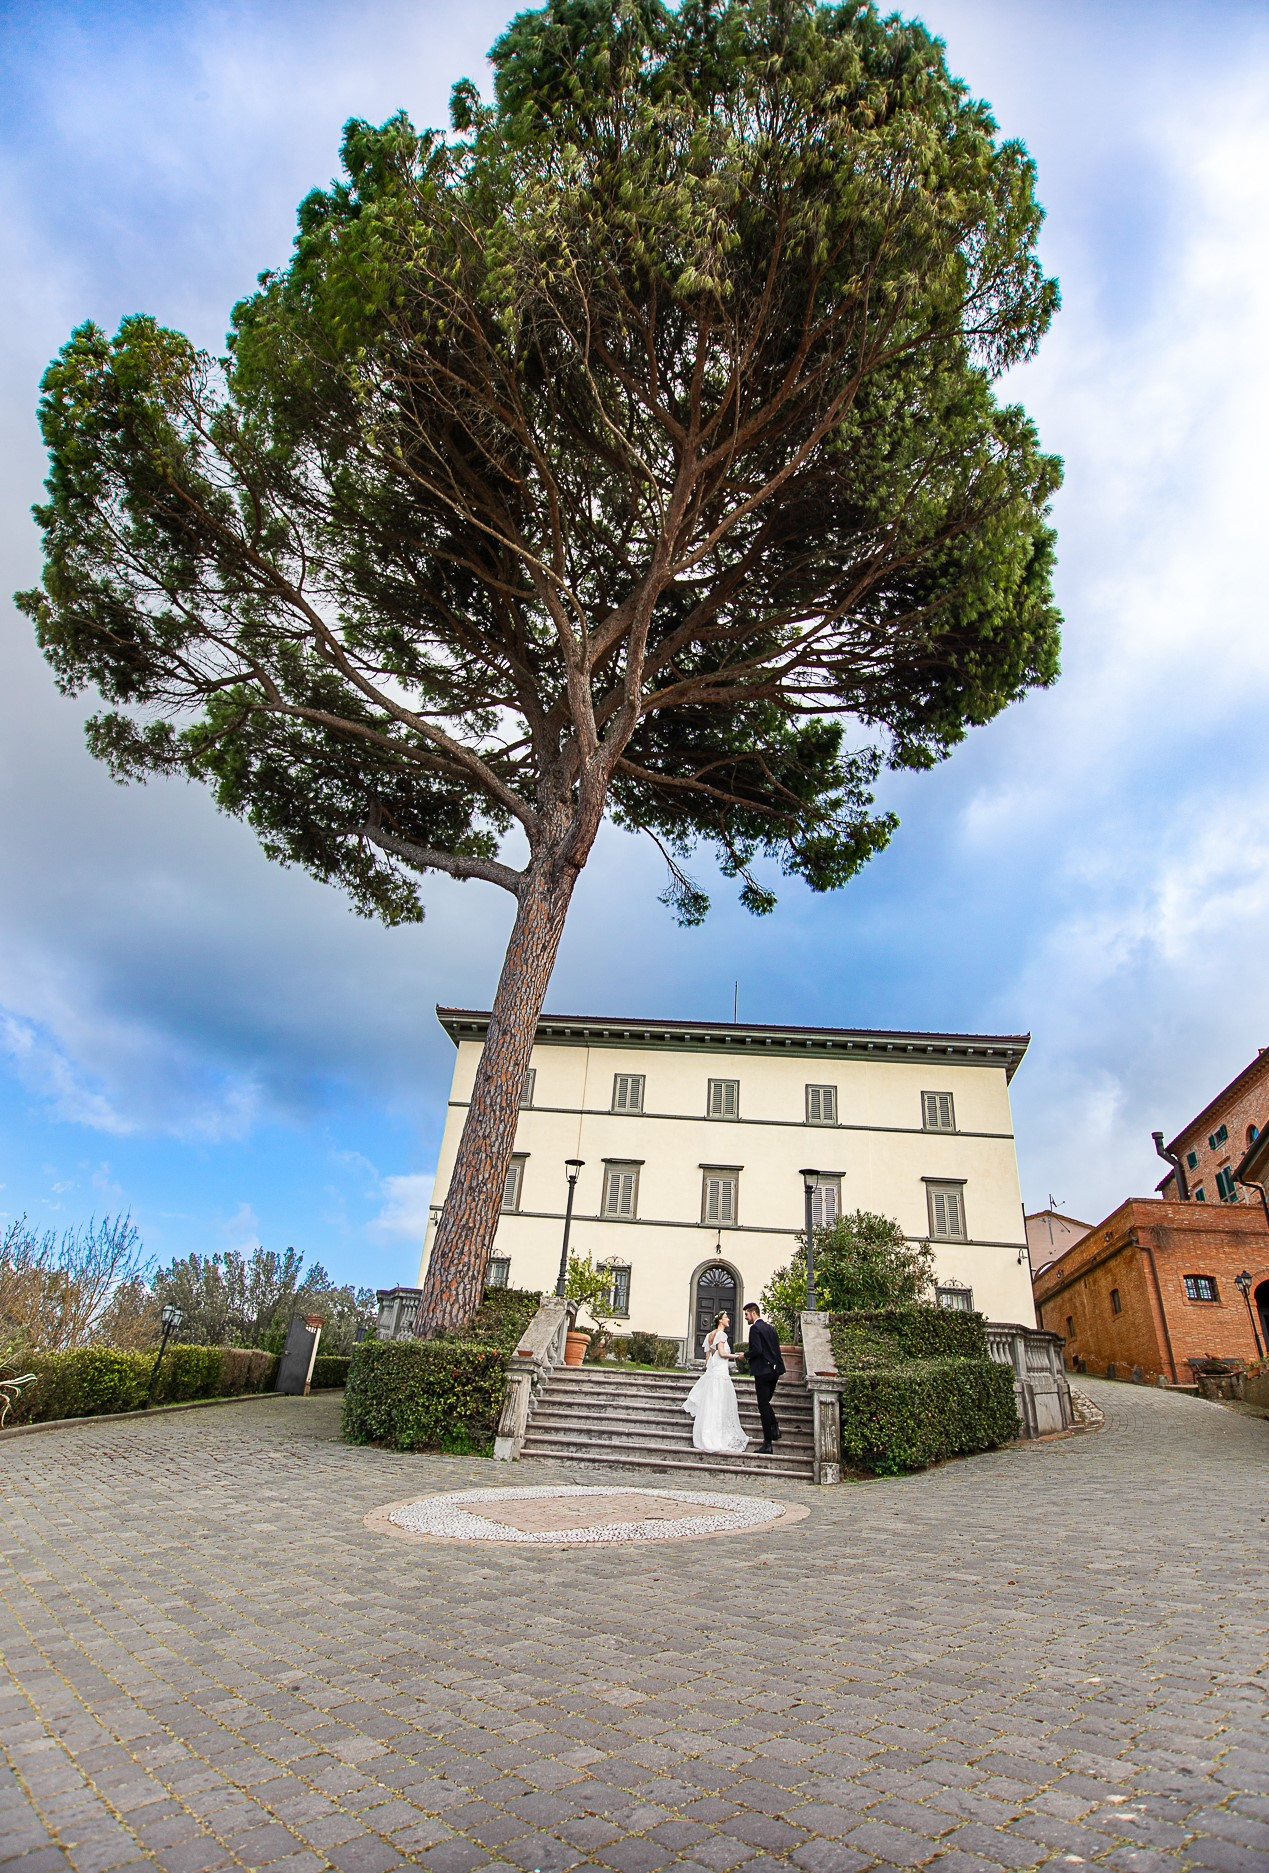 Wedding venue to get married in Tuscany